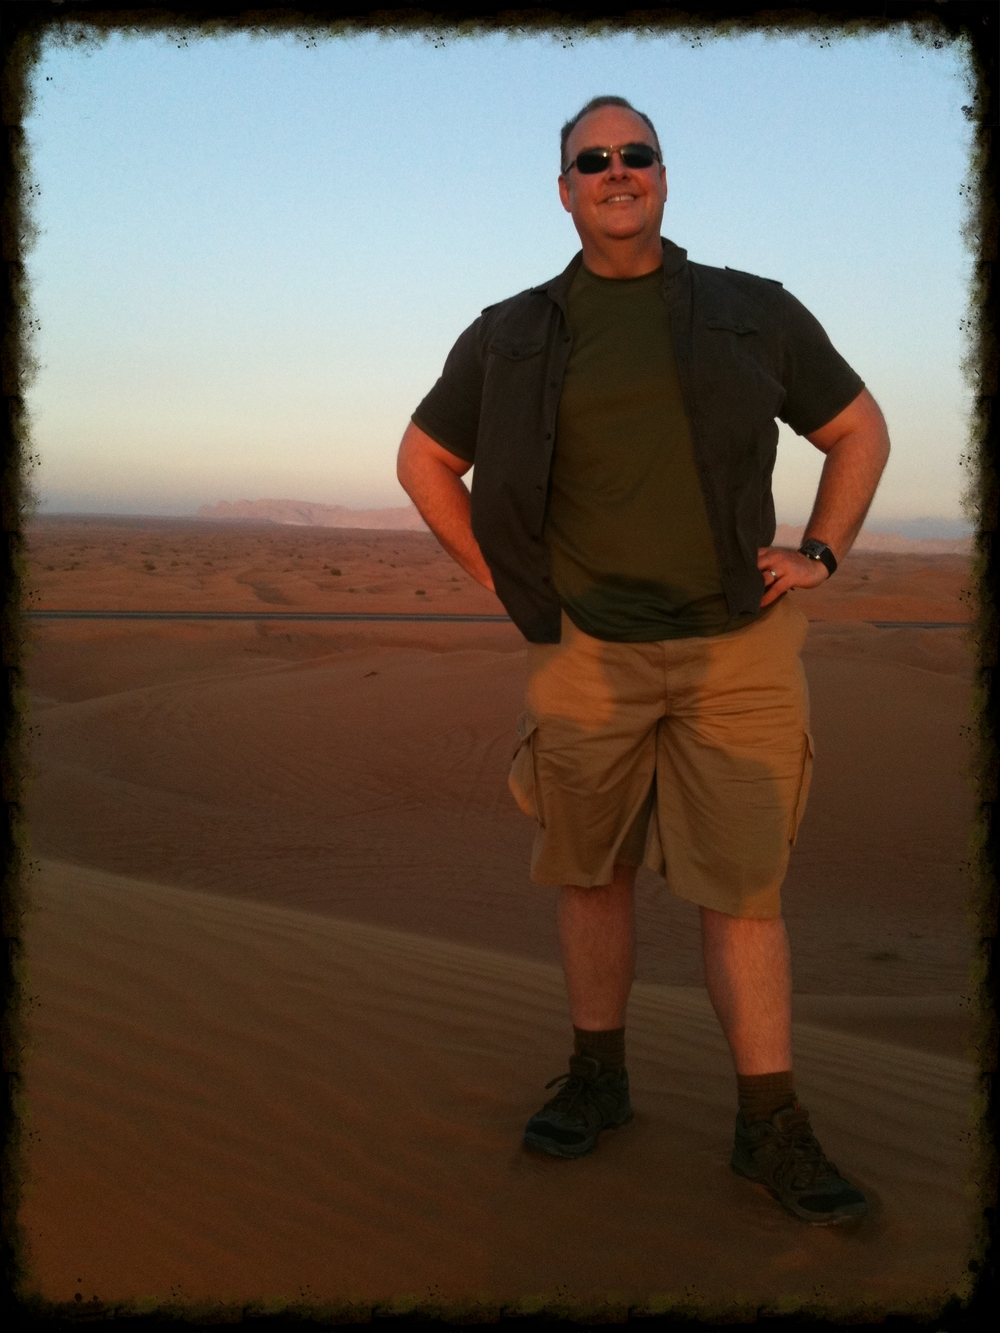 A perk of the job was the global travel. This is the desert outside of Dubai.